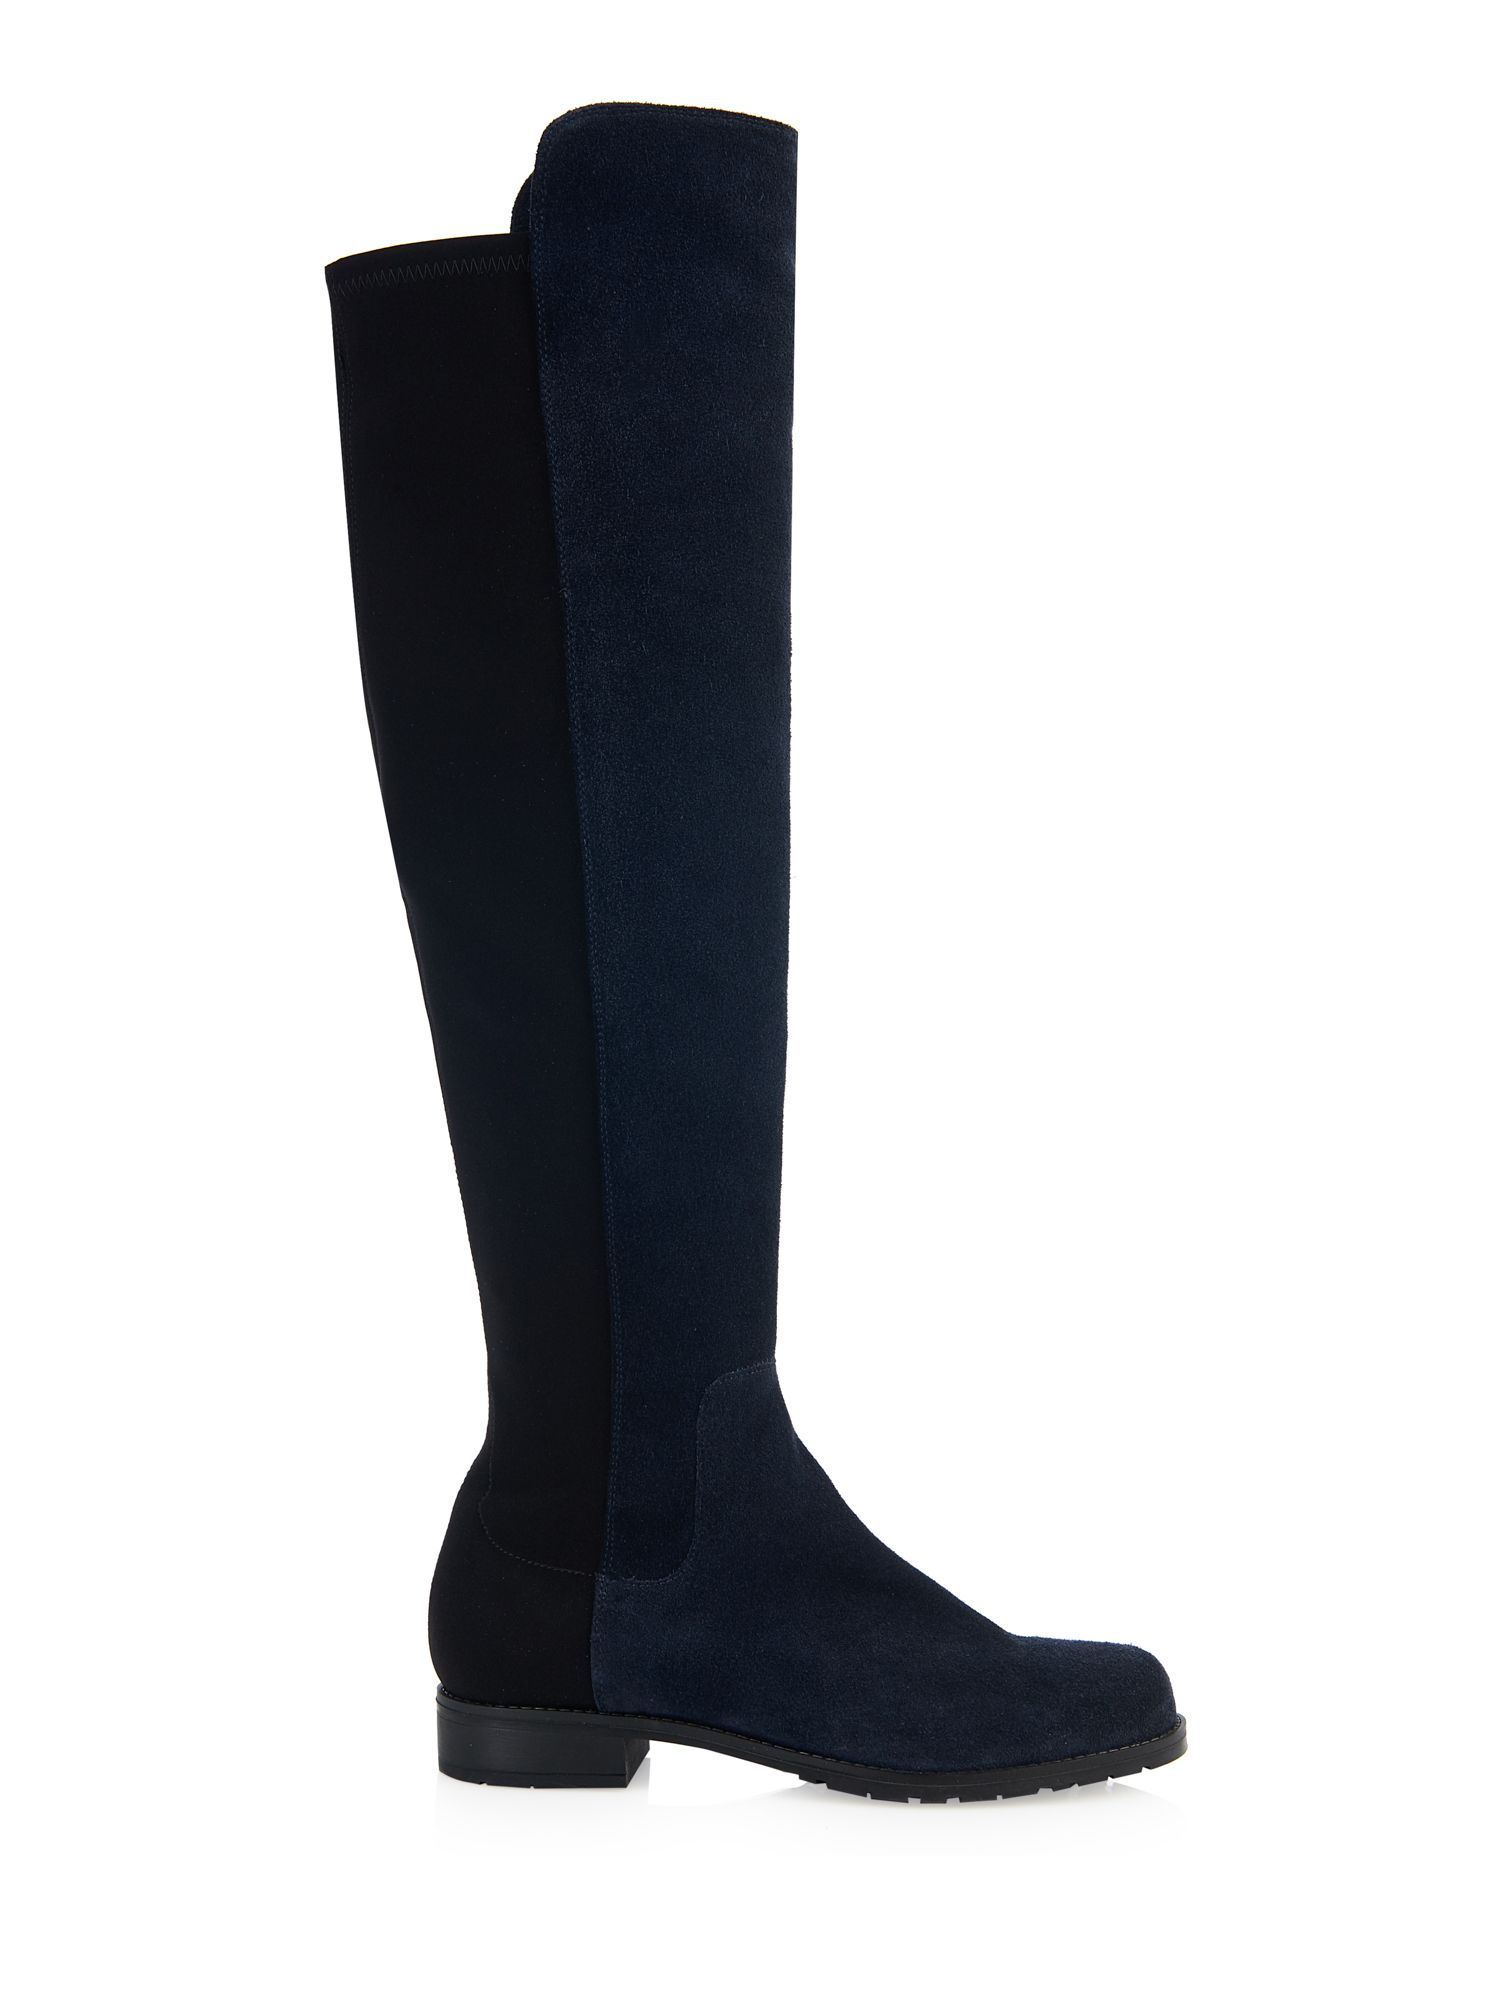 Cara Cara Eastwood over the knee boot, Navy